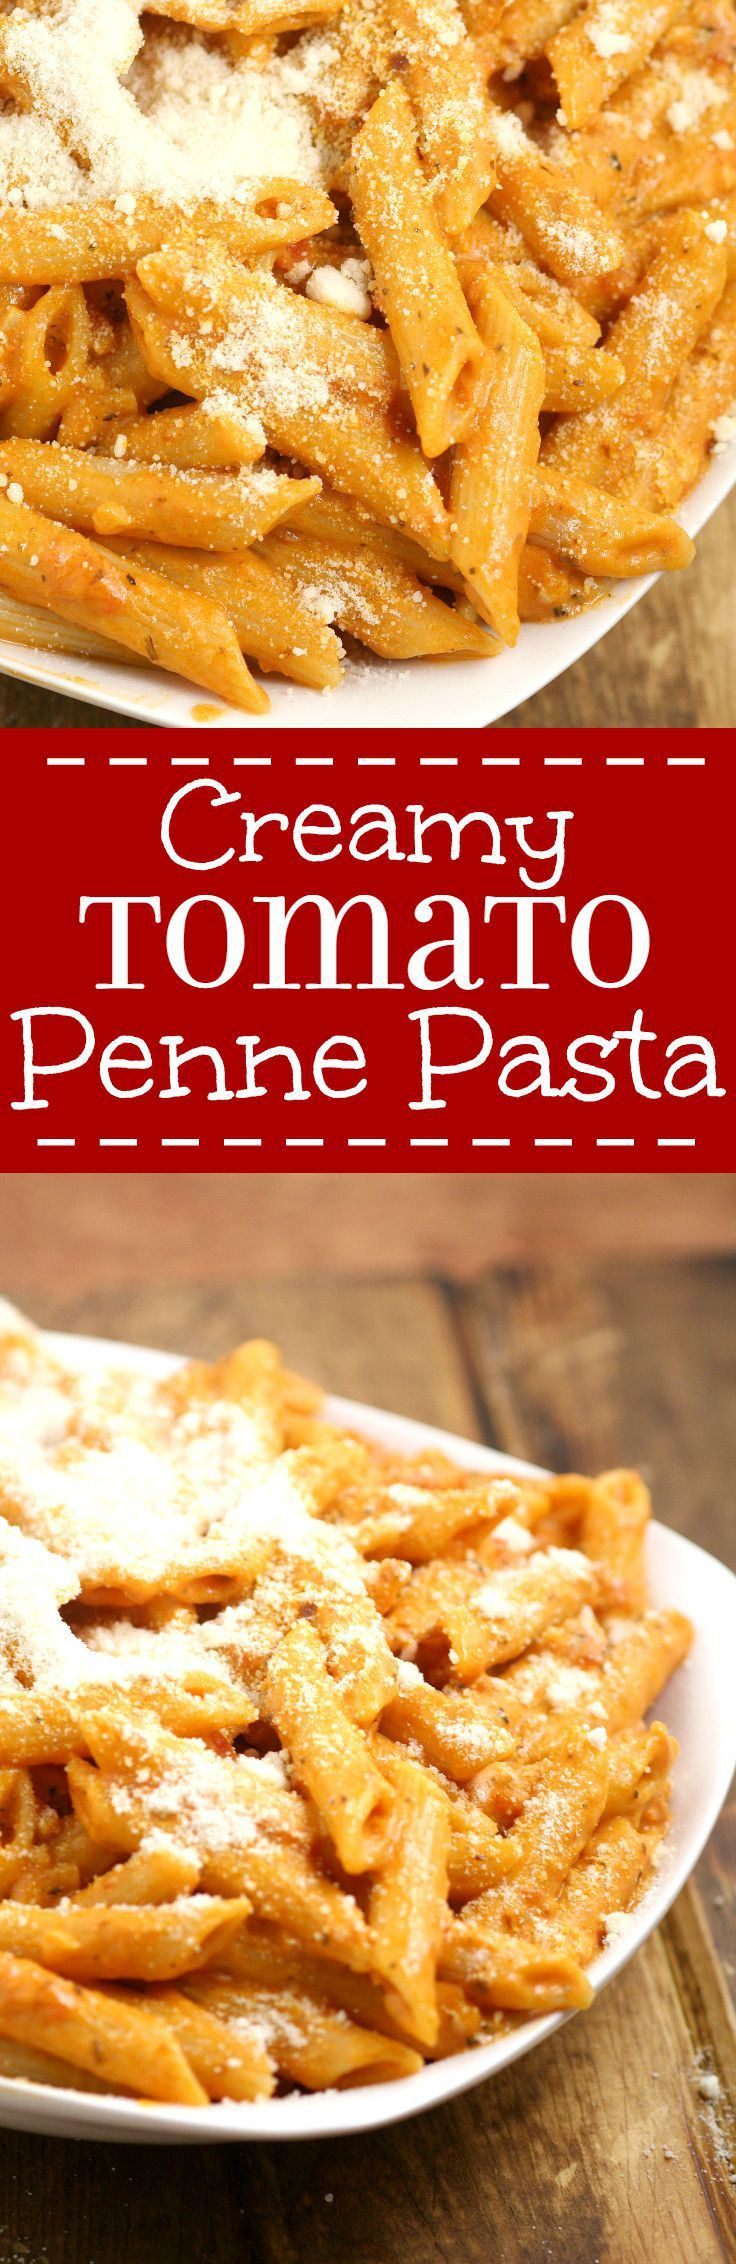 Creamy Tomato Penne Pasta - a quick and easy pasta recipe perfect for family dinner.  Creamy tomato sauce with sauteed garlic and a hint of spicy smothering penne noodles for a quick, easy, and amazingly delicious dinner.  This is seriously one of my favorites. I craved this All. The. Time. the last time I was pregnant.